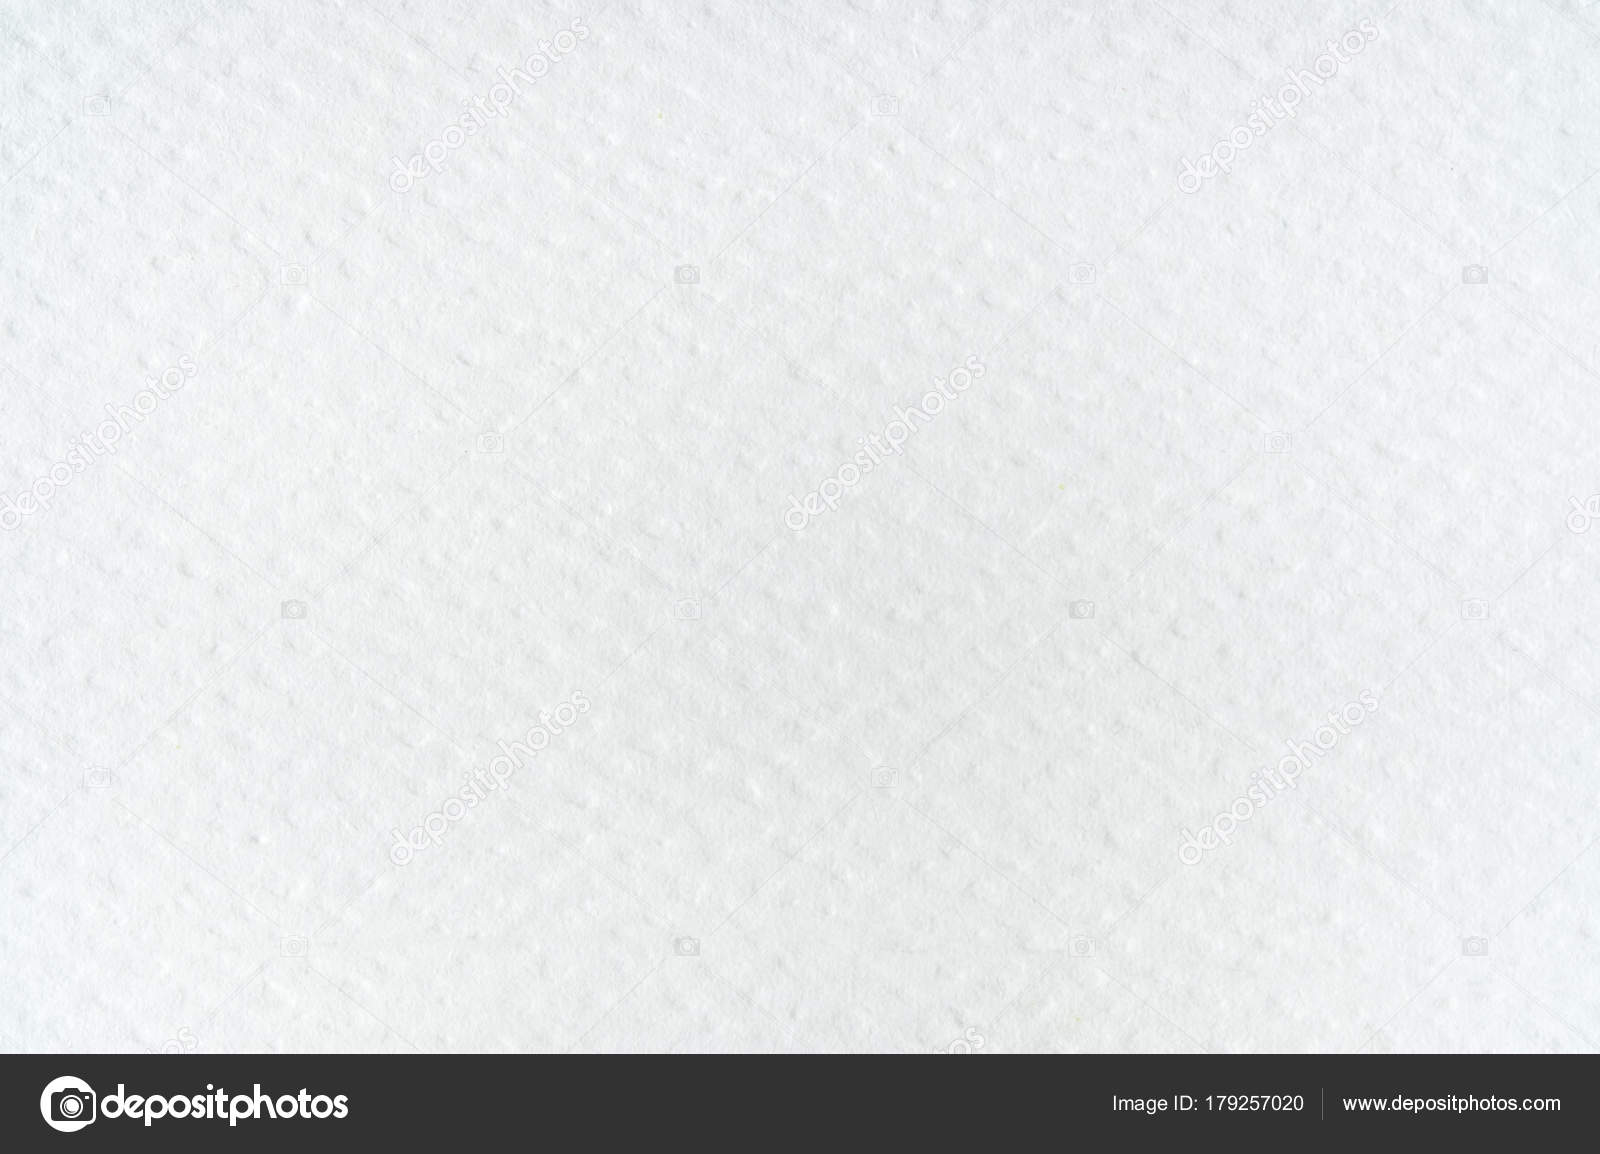 White clean rough watercolor paper texture background